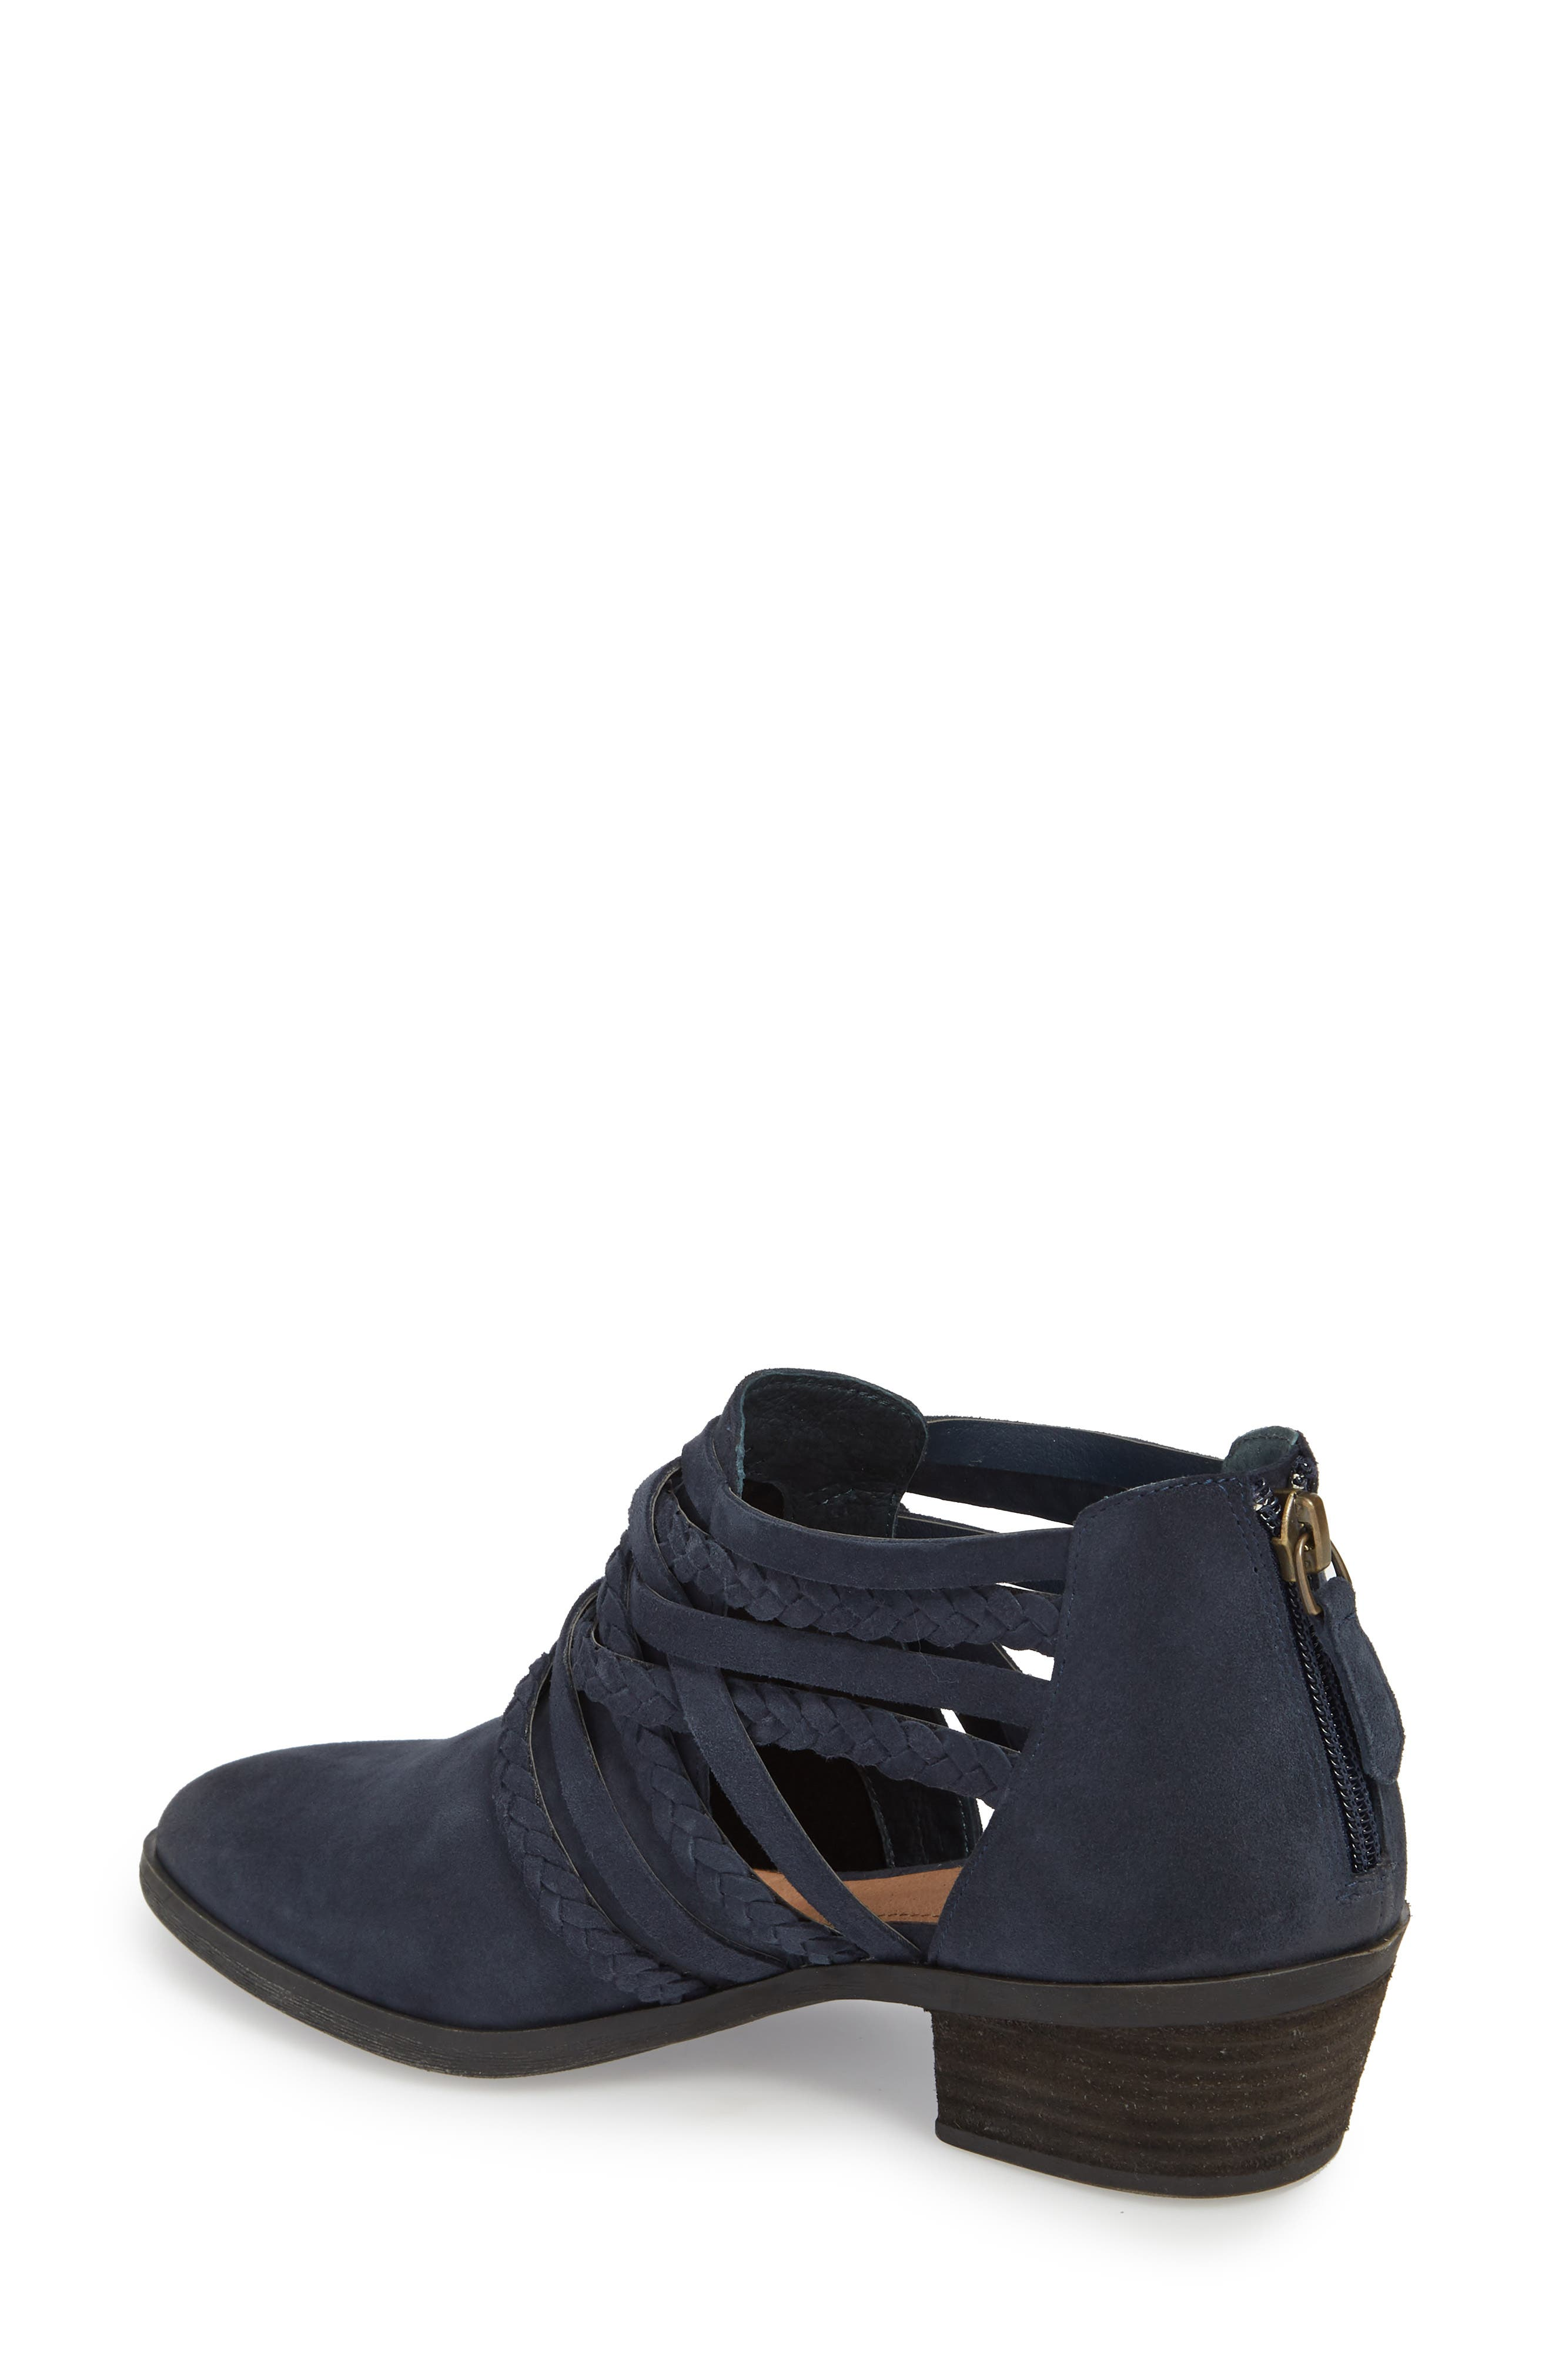 Liam Braided Bootie,                             Alternate thumbnail 2, color,                             NAVY SUEDE